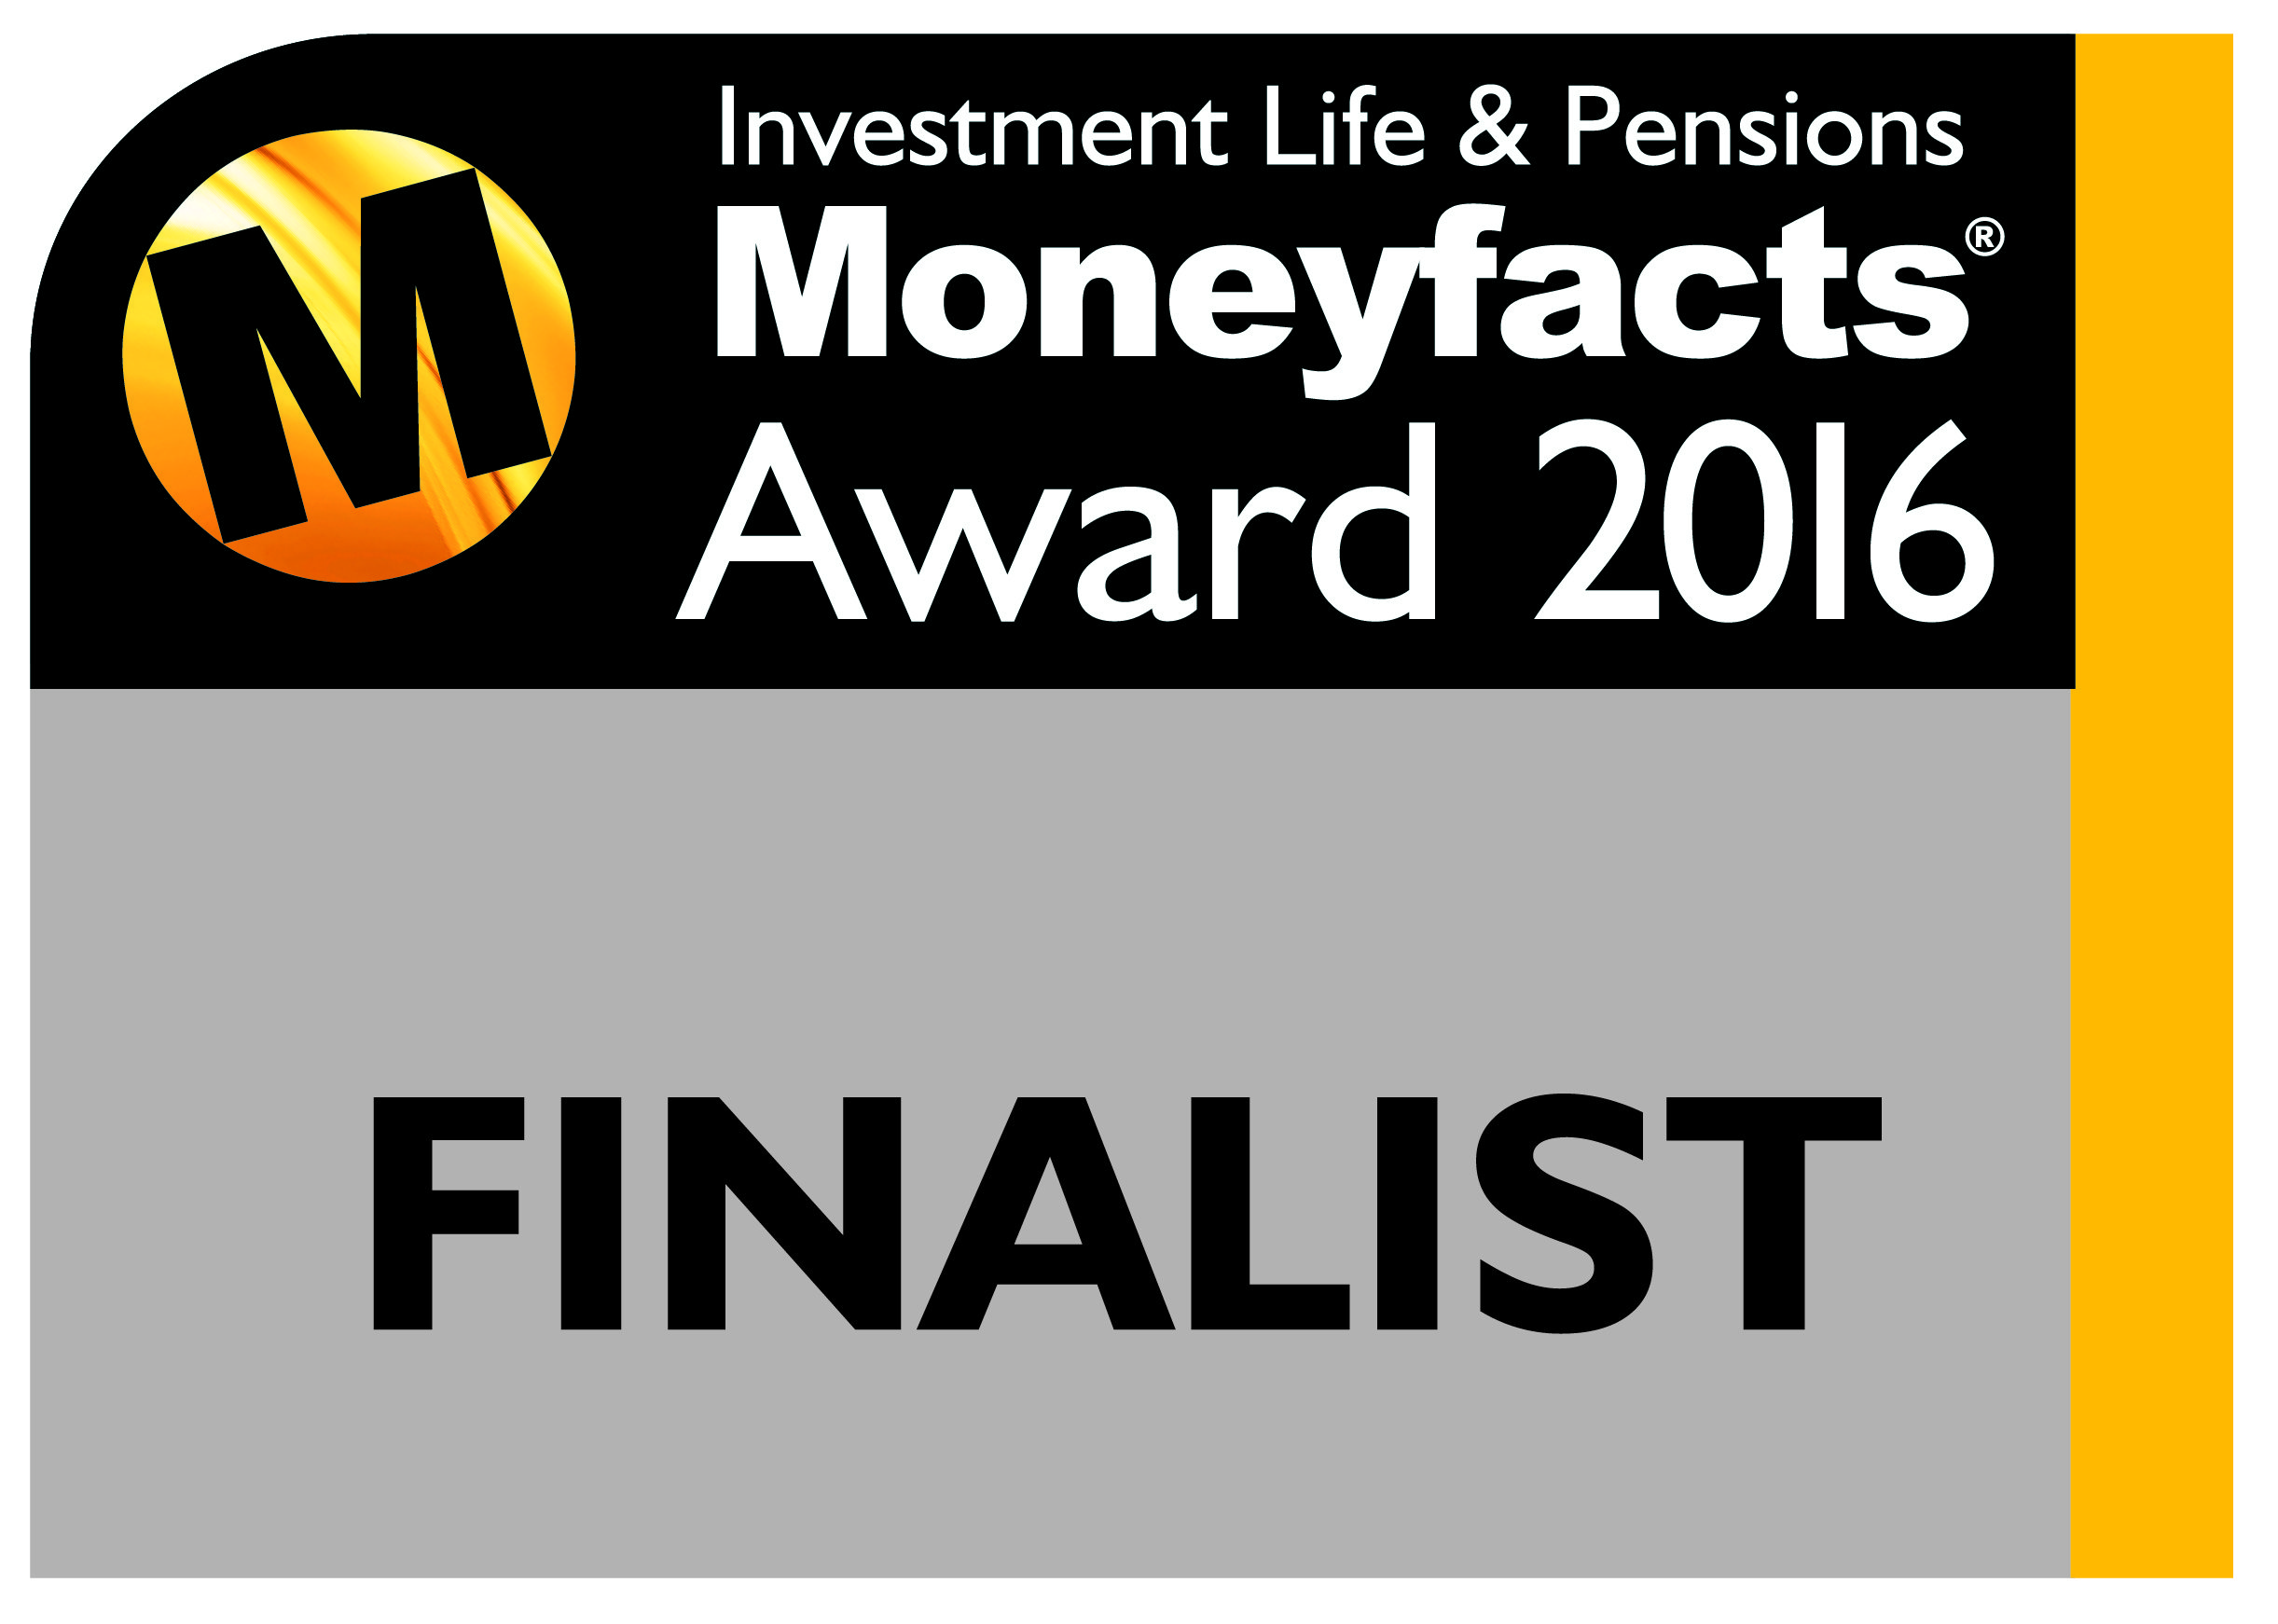 MoneyFacts Awards 2016